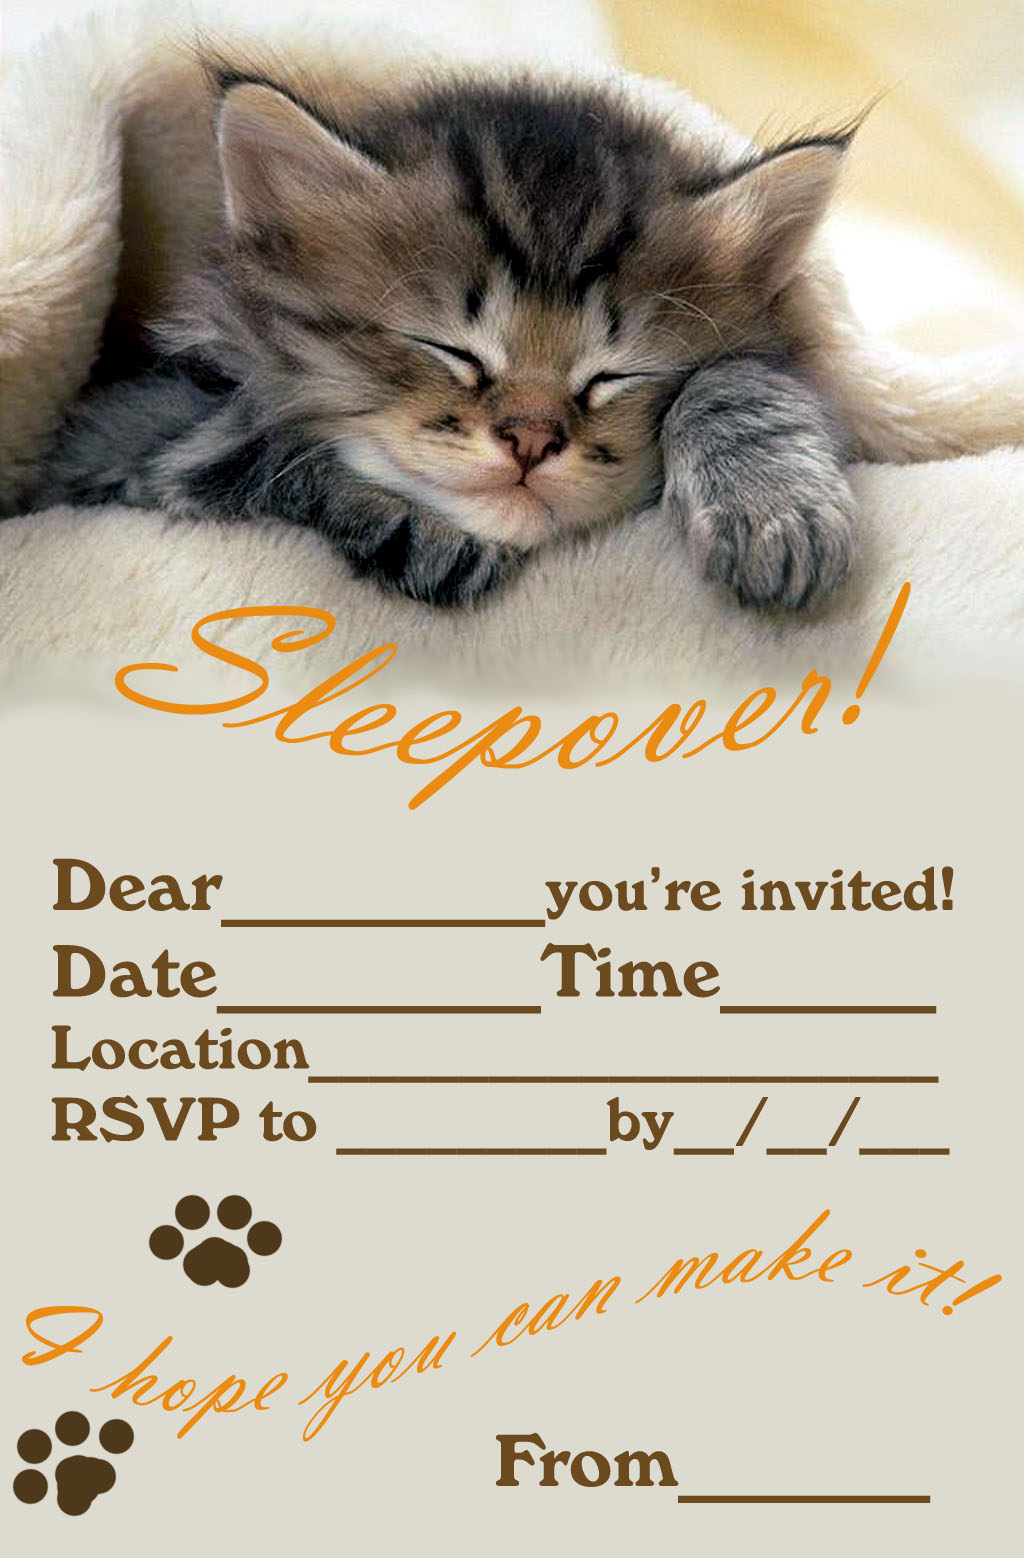 free printable birthday sleepover invitation templates ; 5100ce96bd5f0d0d5c39972787c49df7